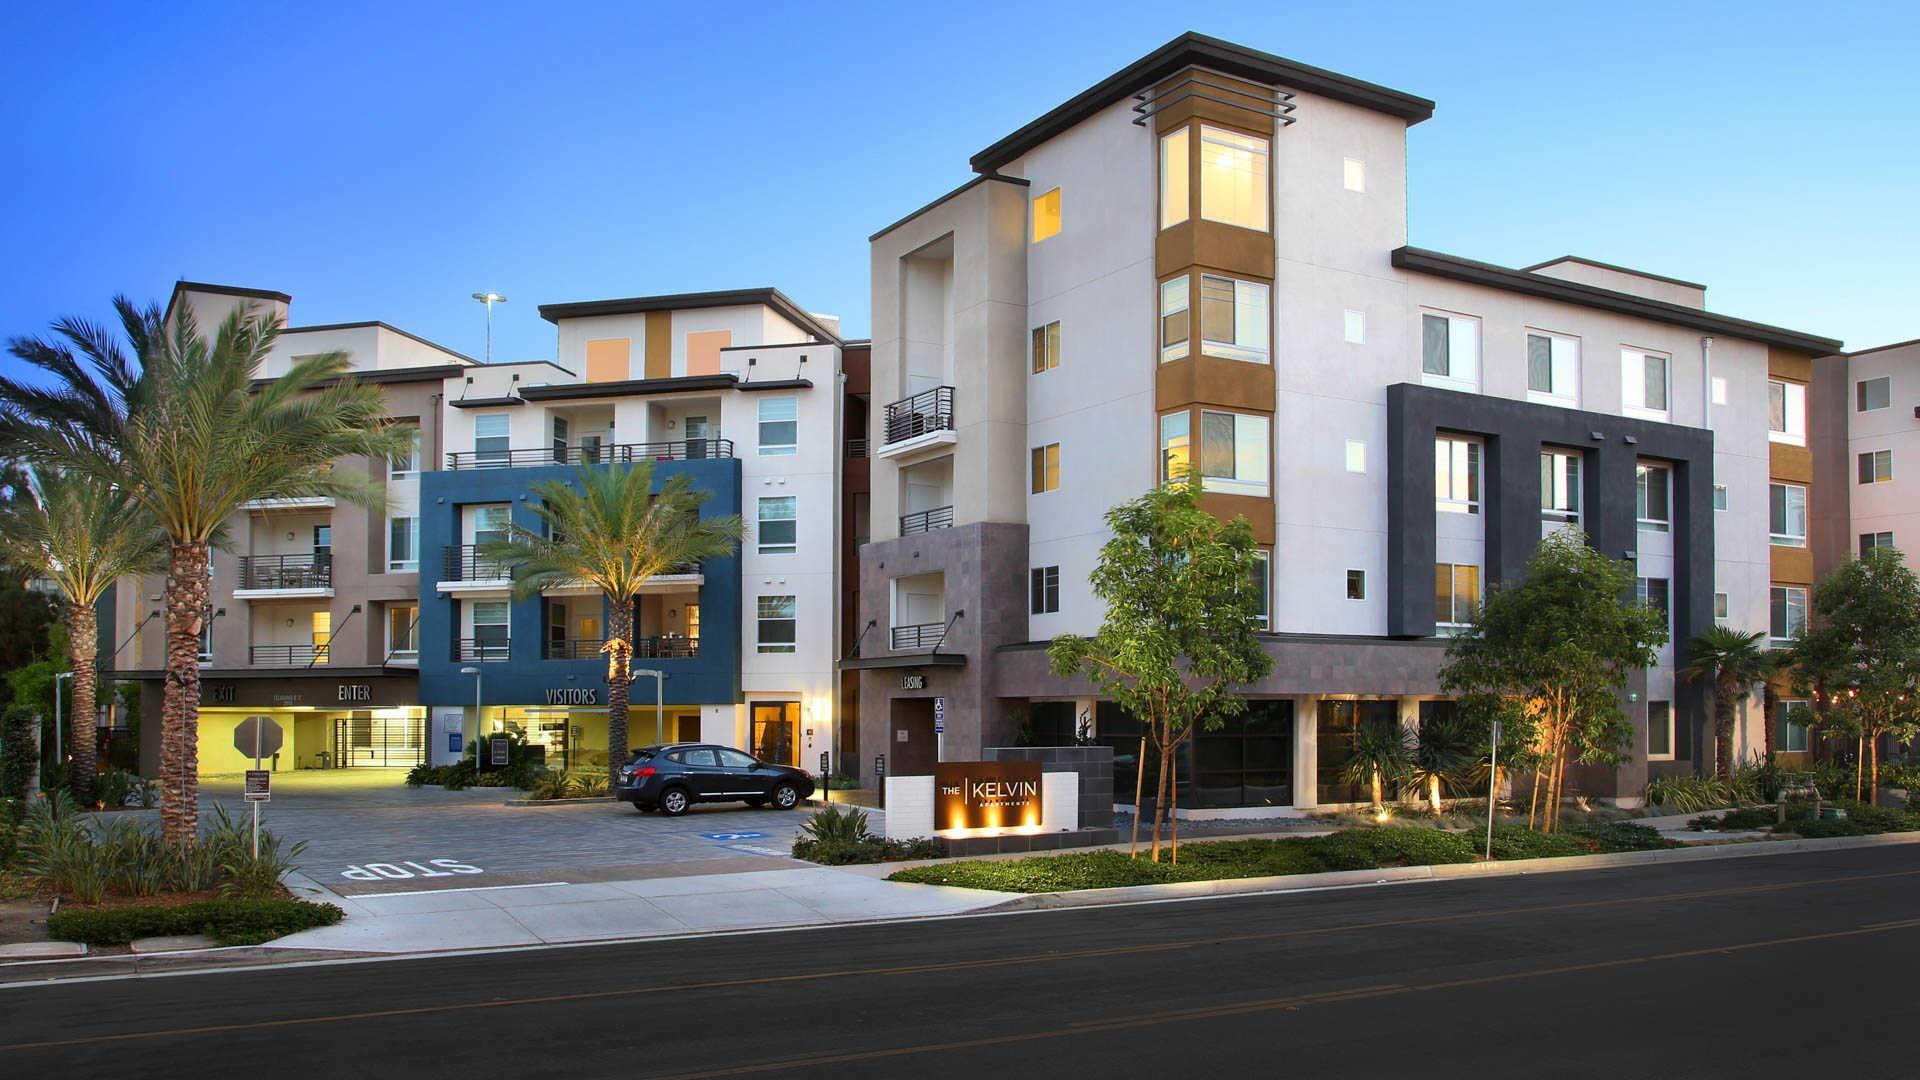 Apartment 1 Bedroom The Kelvin Apartments Irvine Ca Walk Score